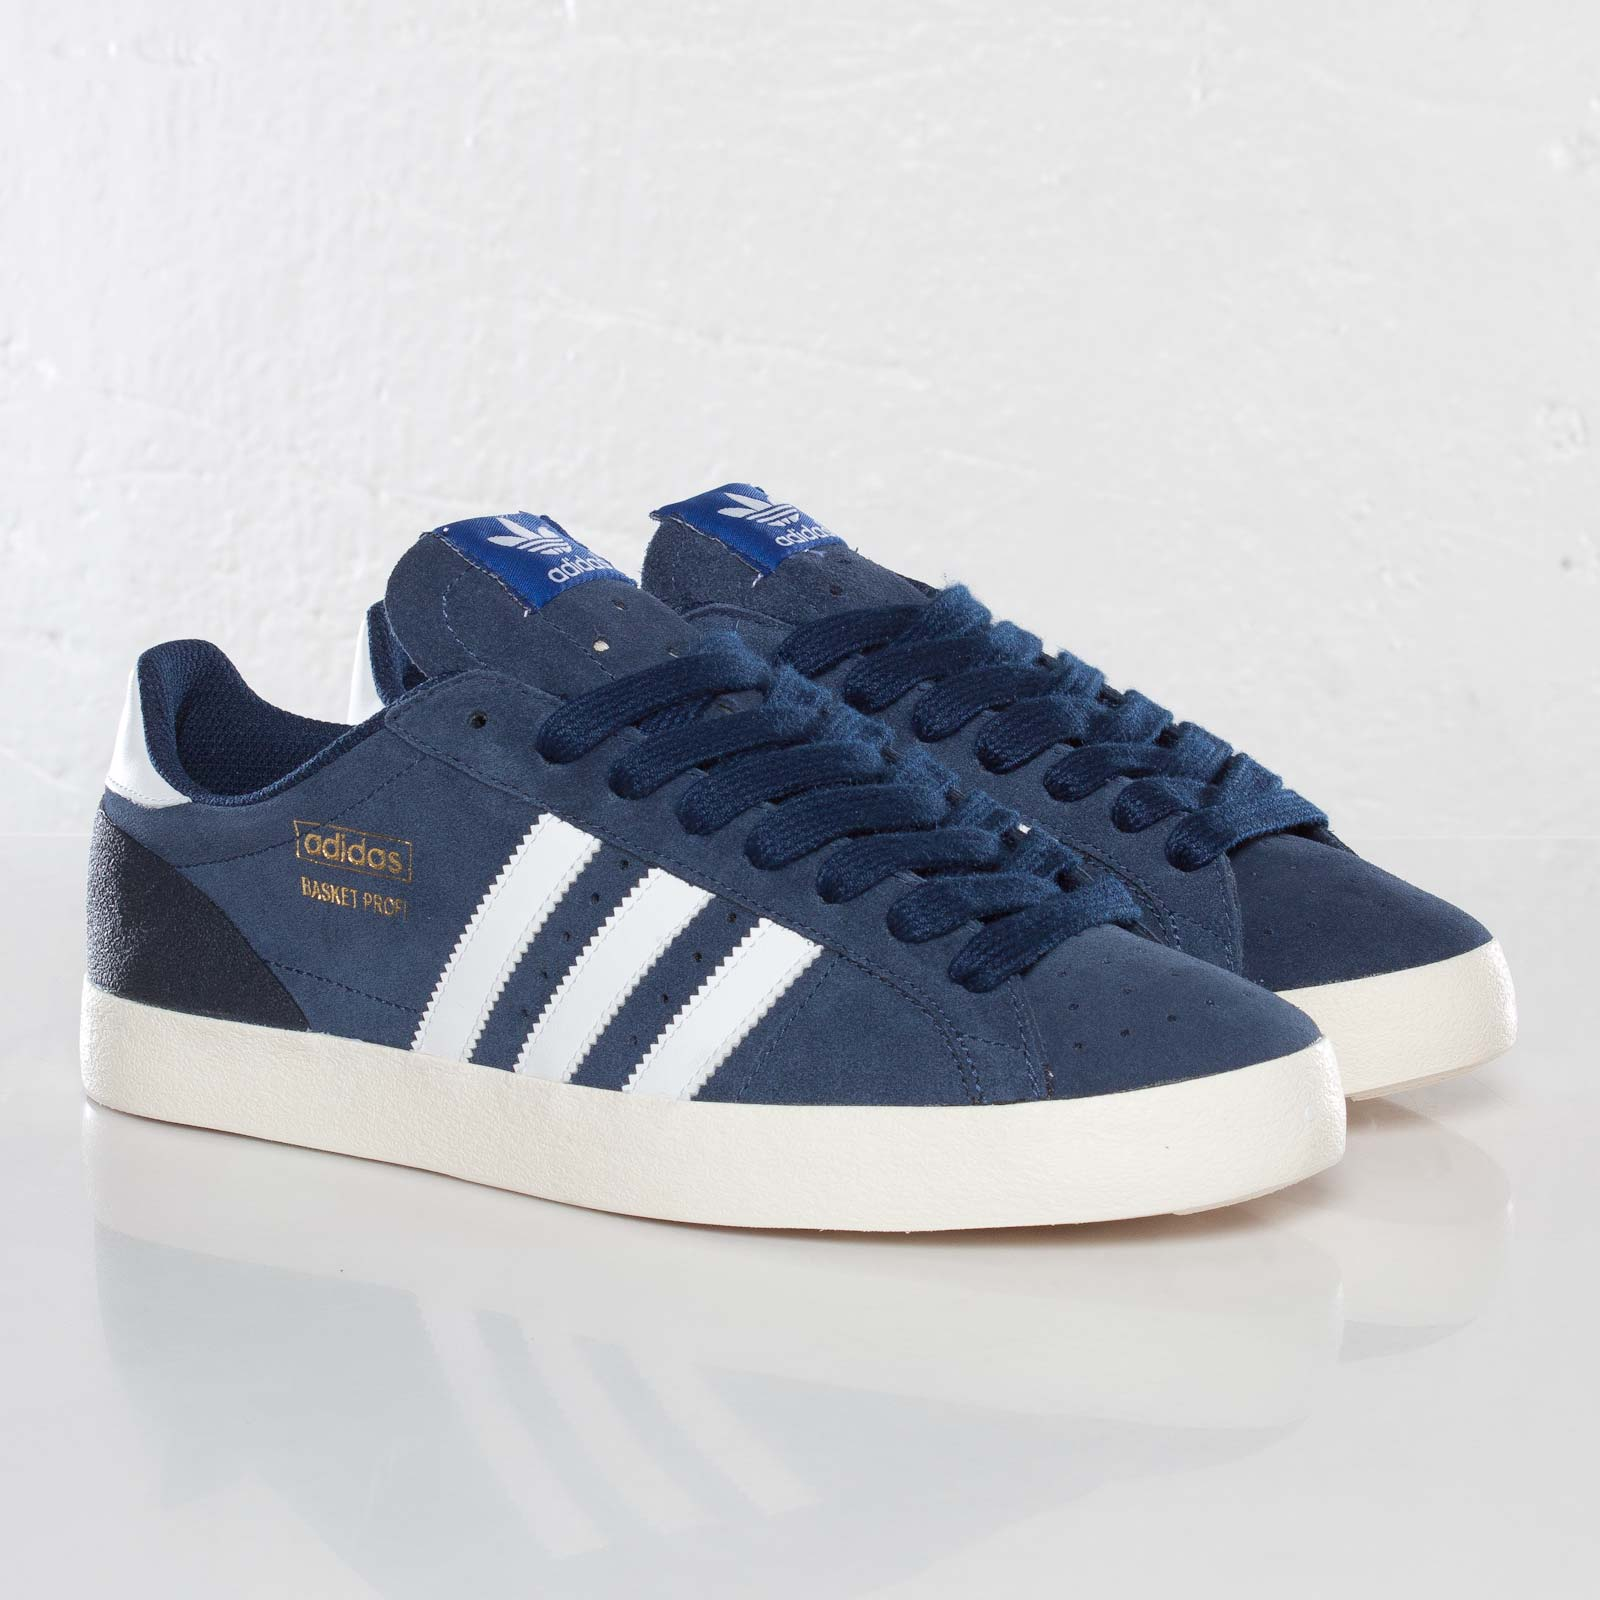 quality design 38cd4 4501f adidas Basket Profi Lo